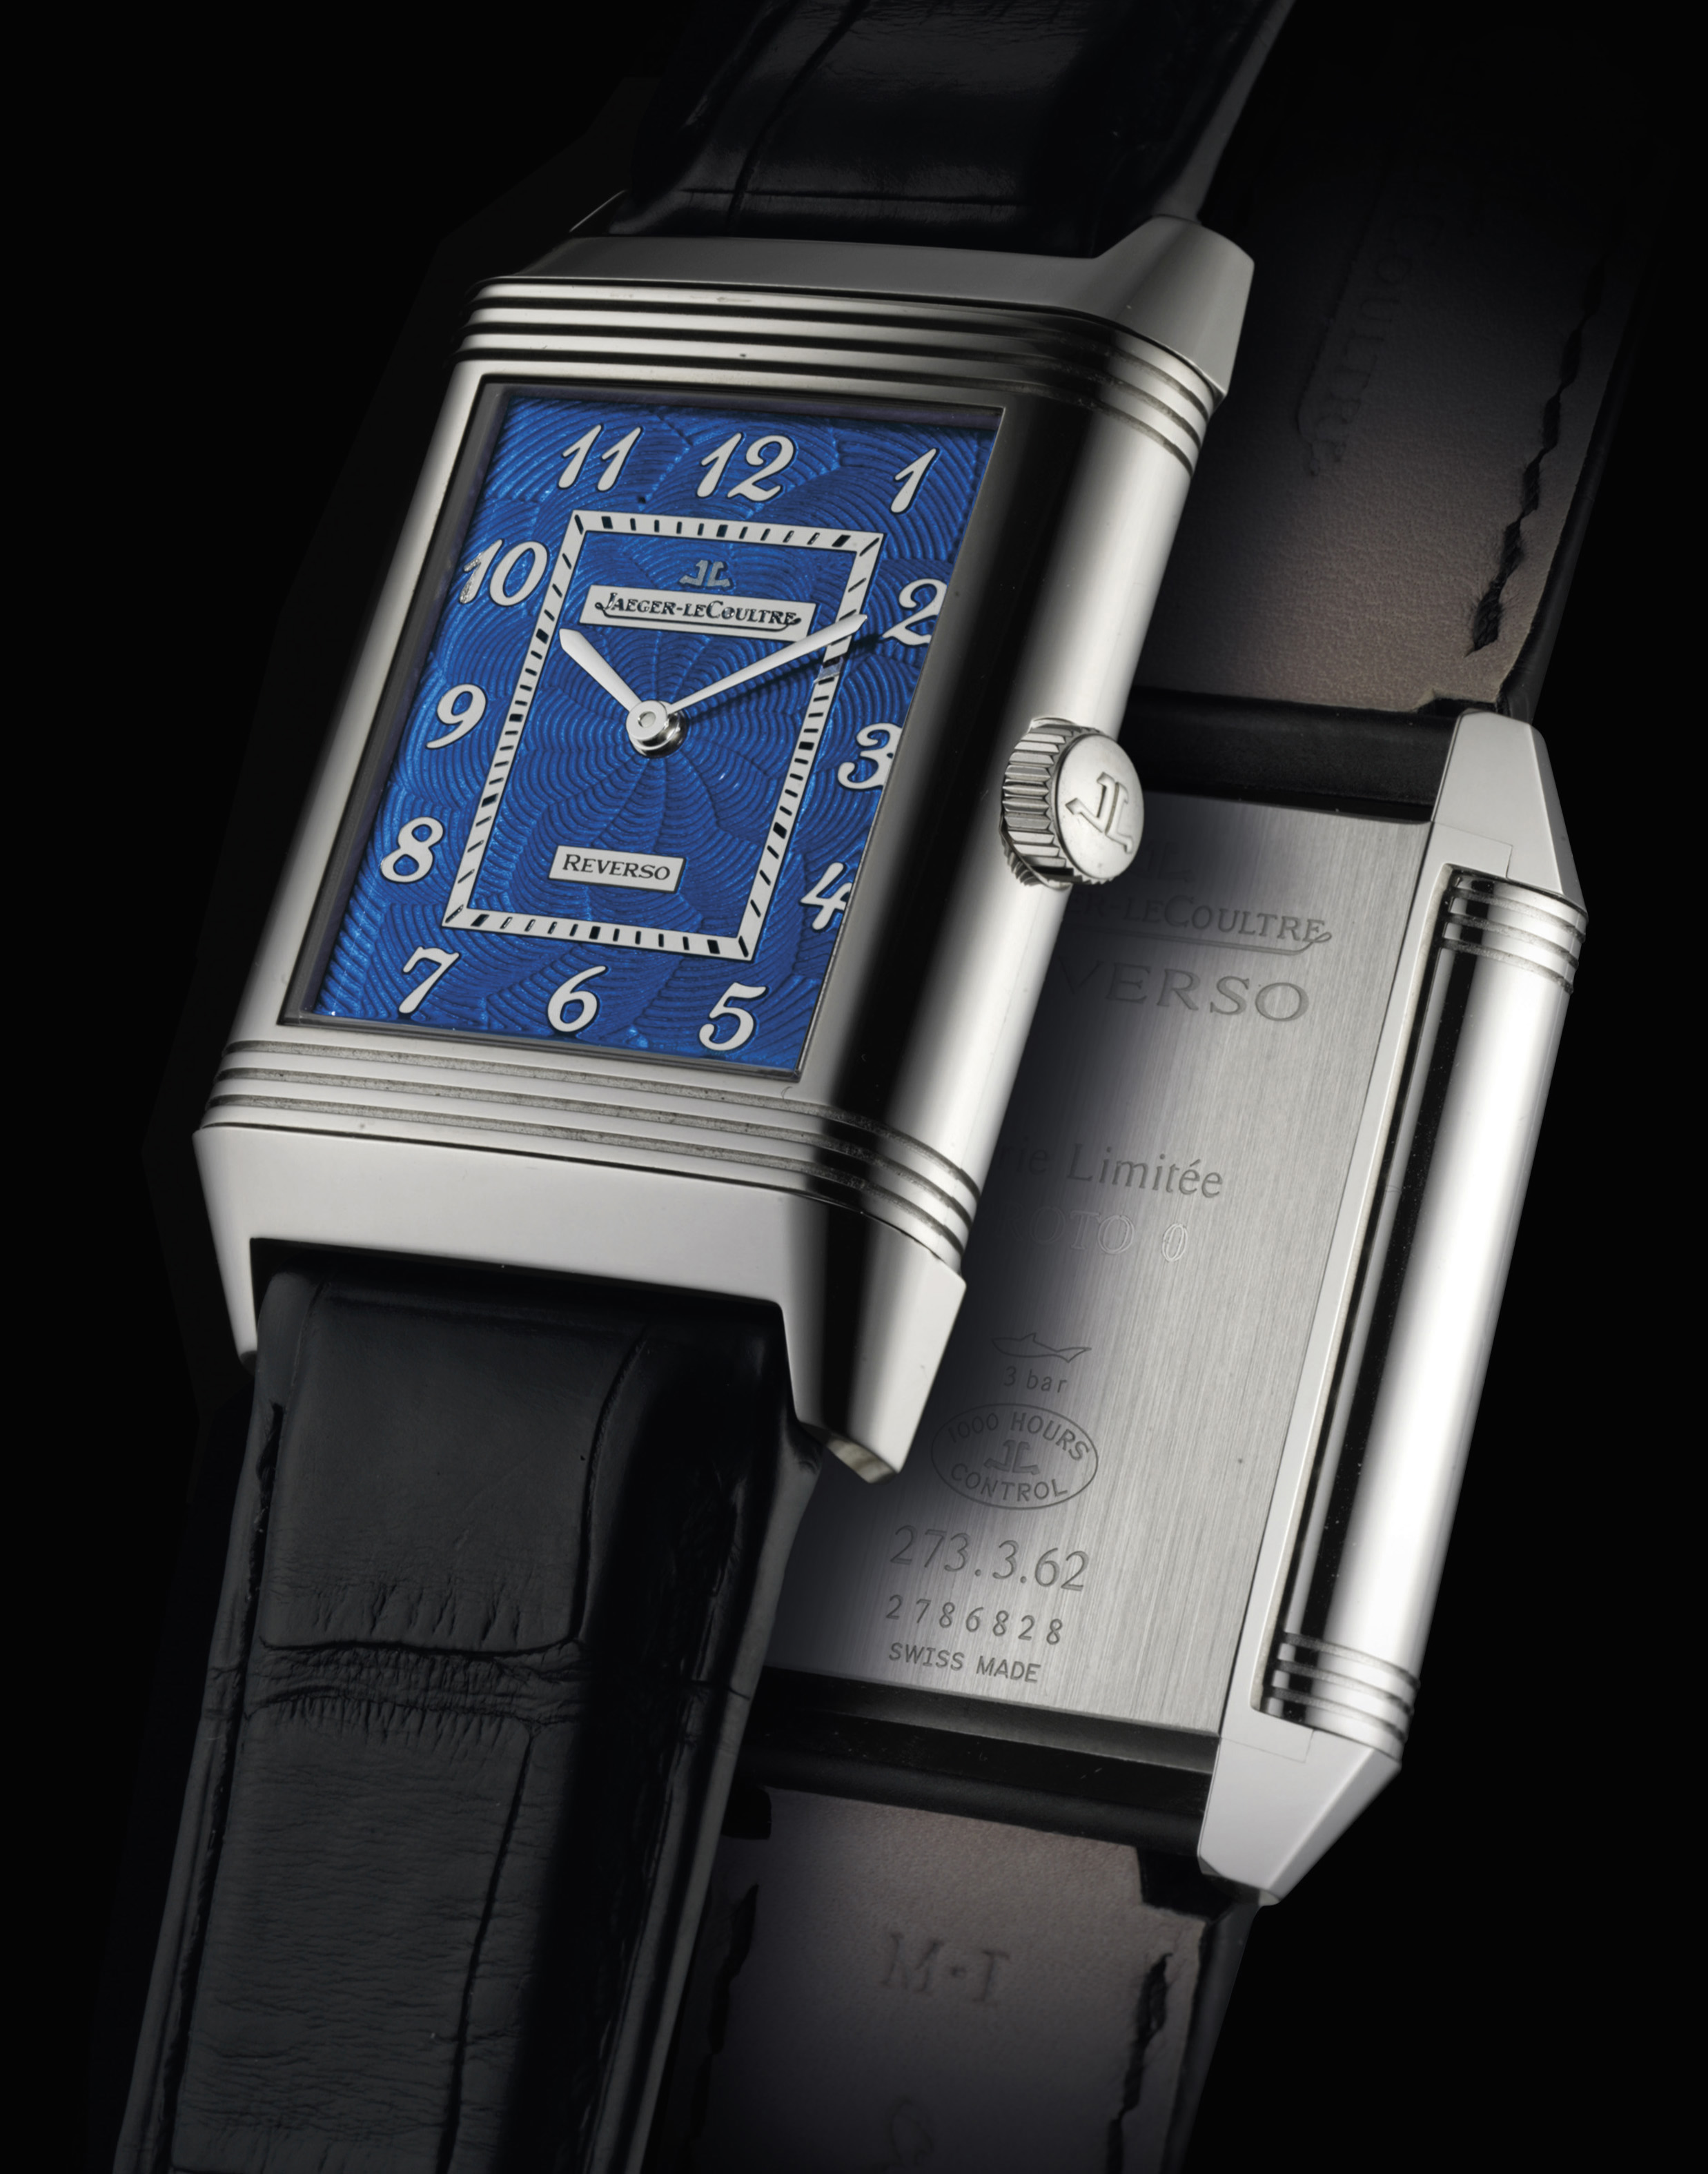 JAEGER-LECOULTRE. A FINE, LARGE AND VERY RARE PROTOTYPE REVERSO WRISTWATCH WITH BLUE ENAMEL DIAL